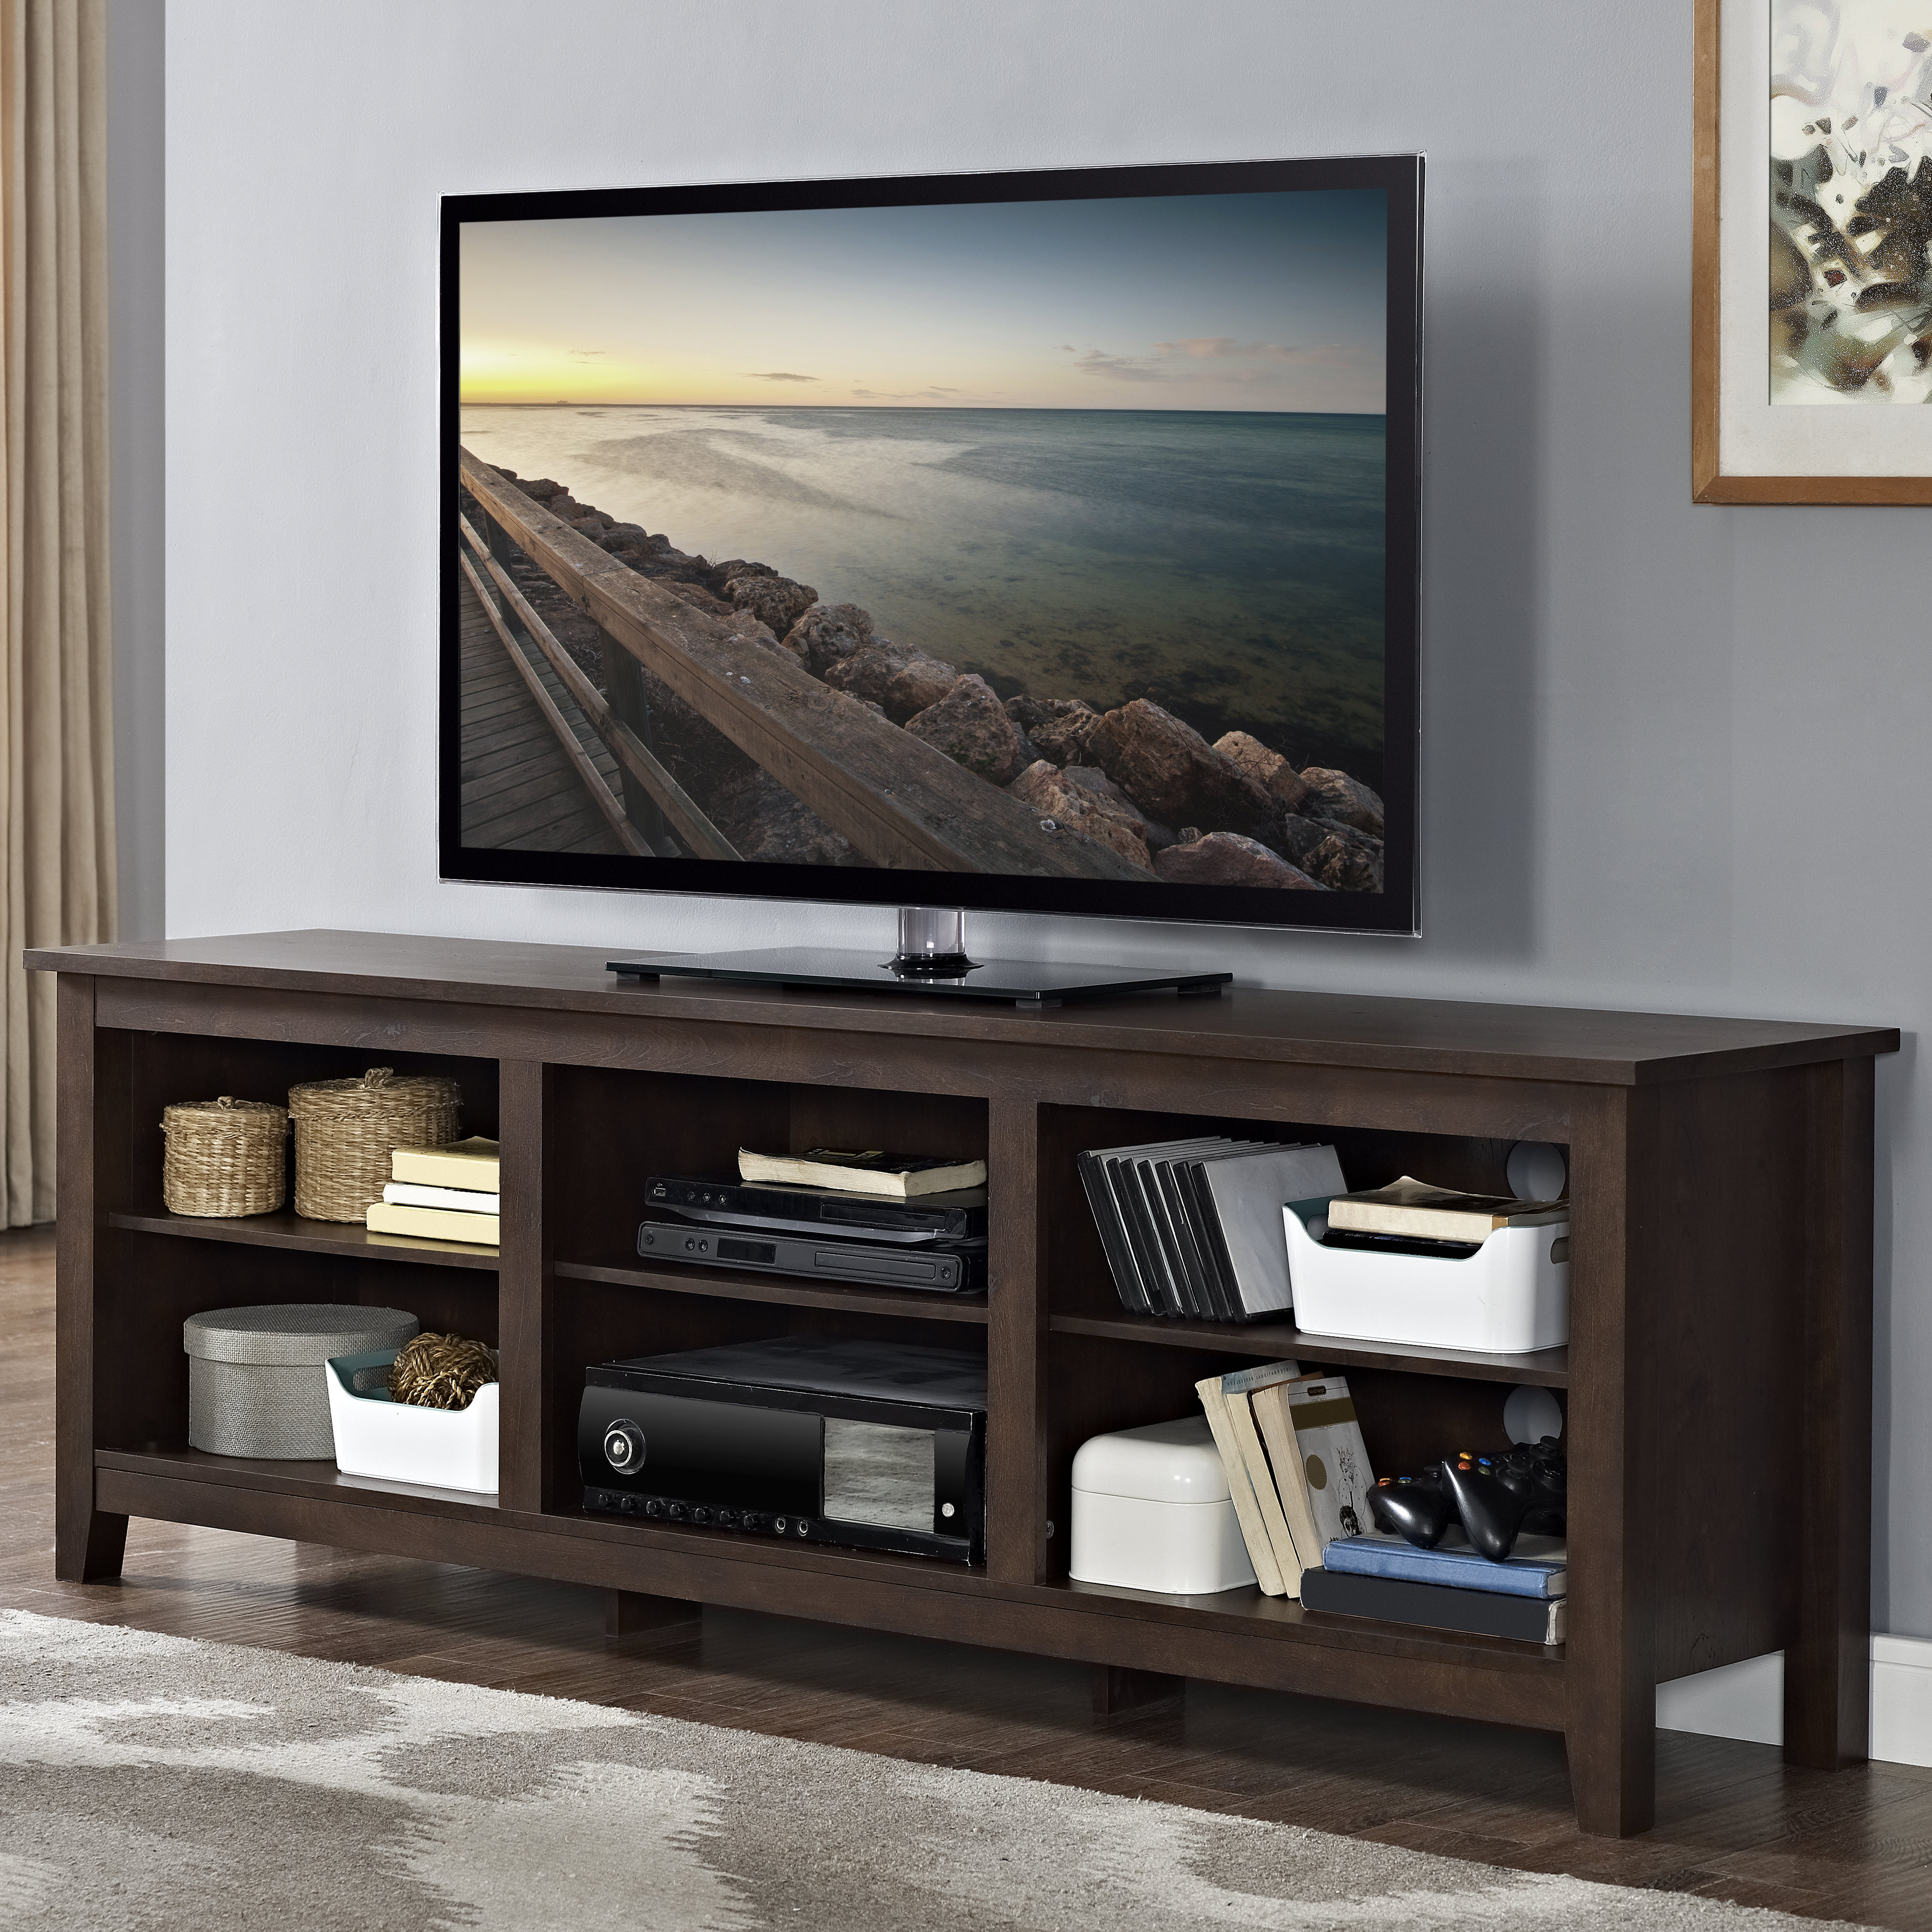 Tv Stand And Coffee Table Set (View 6 of 20)